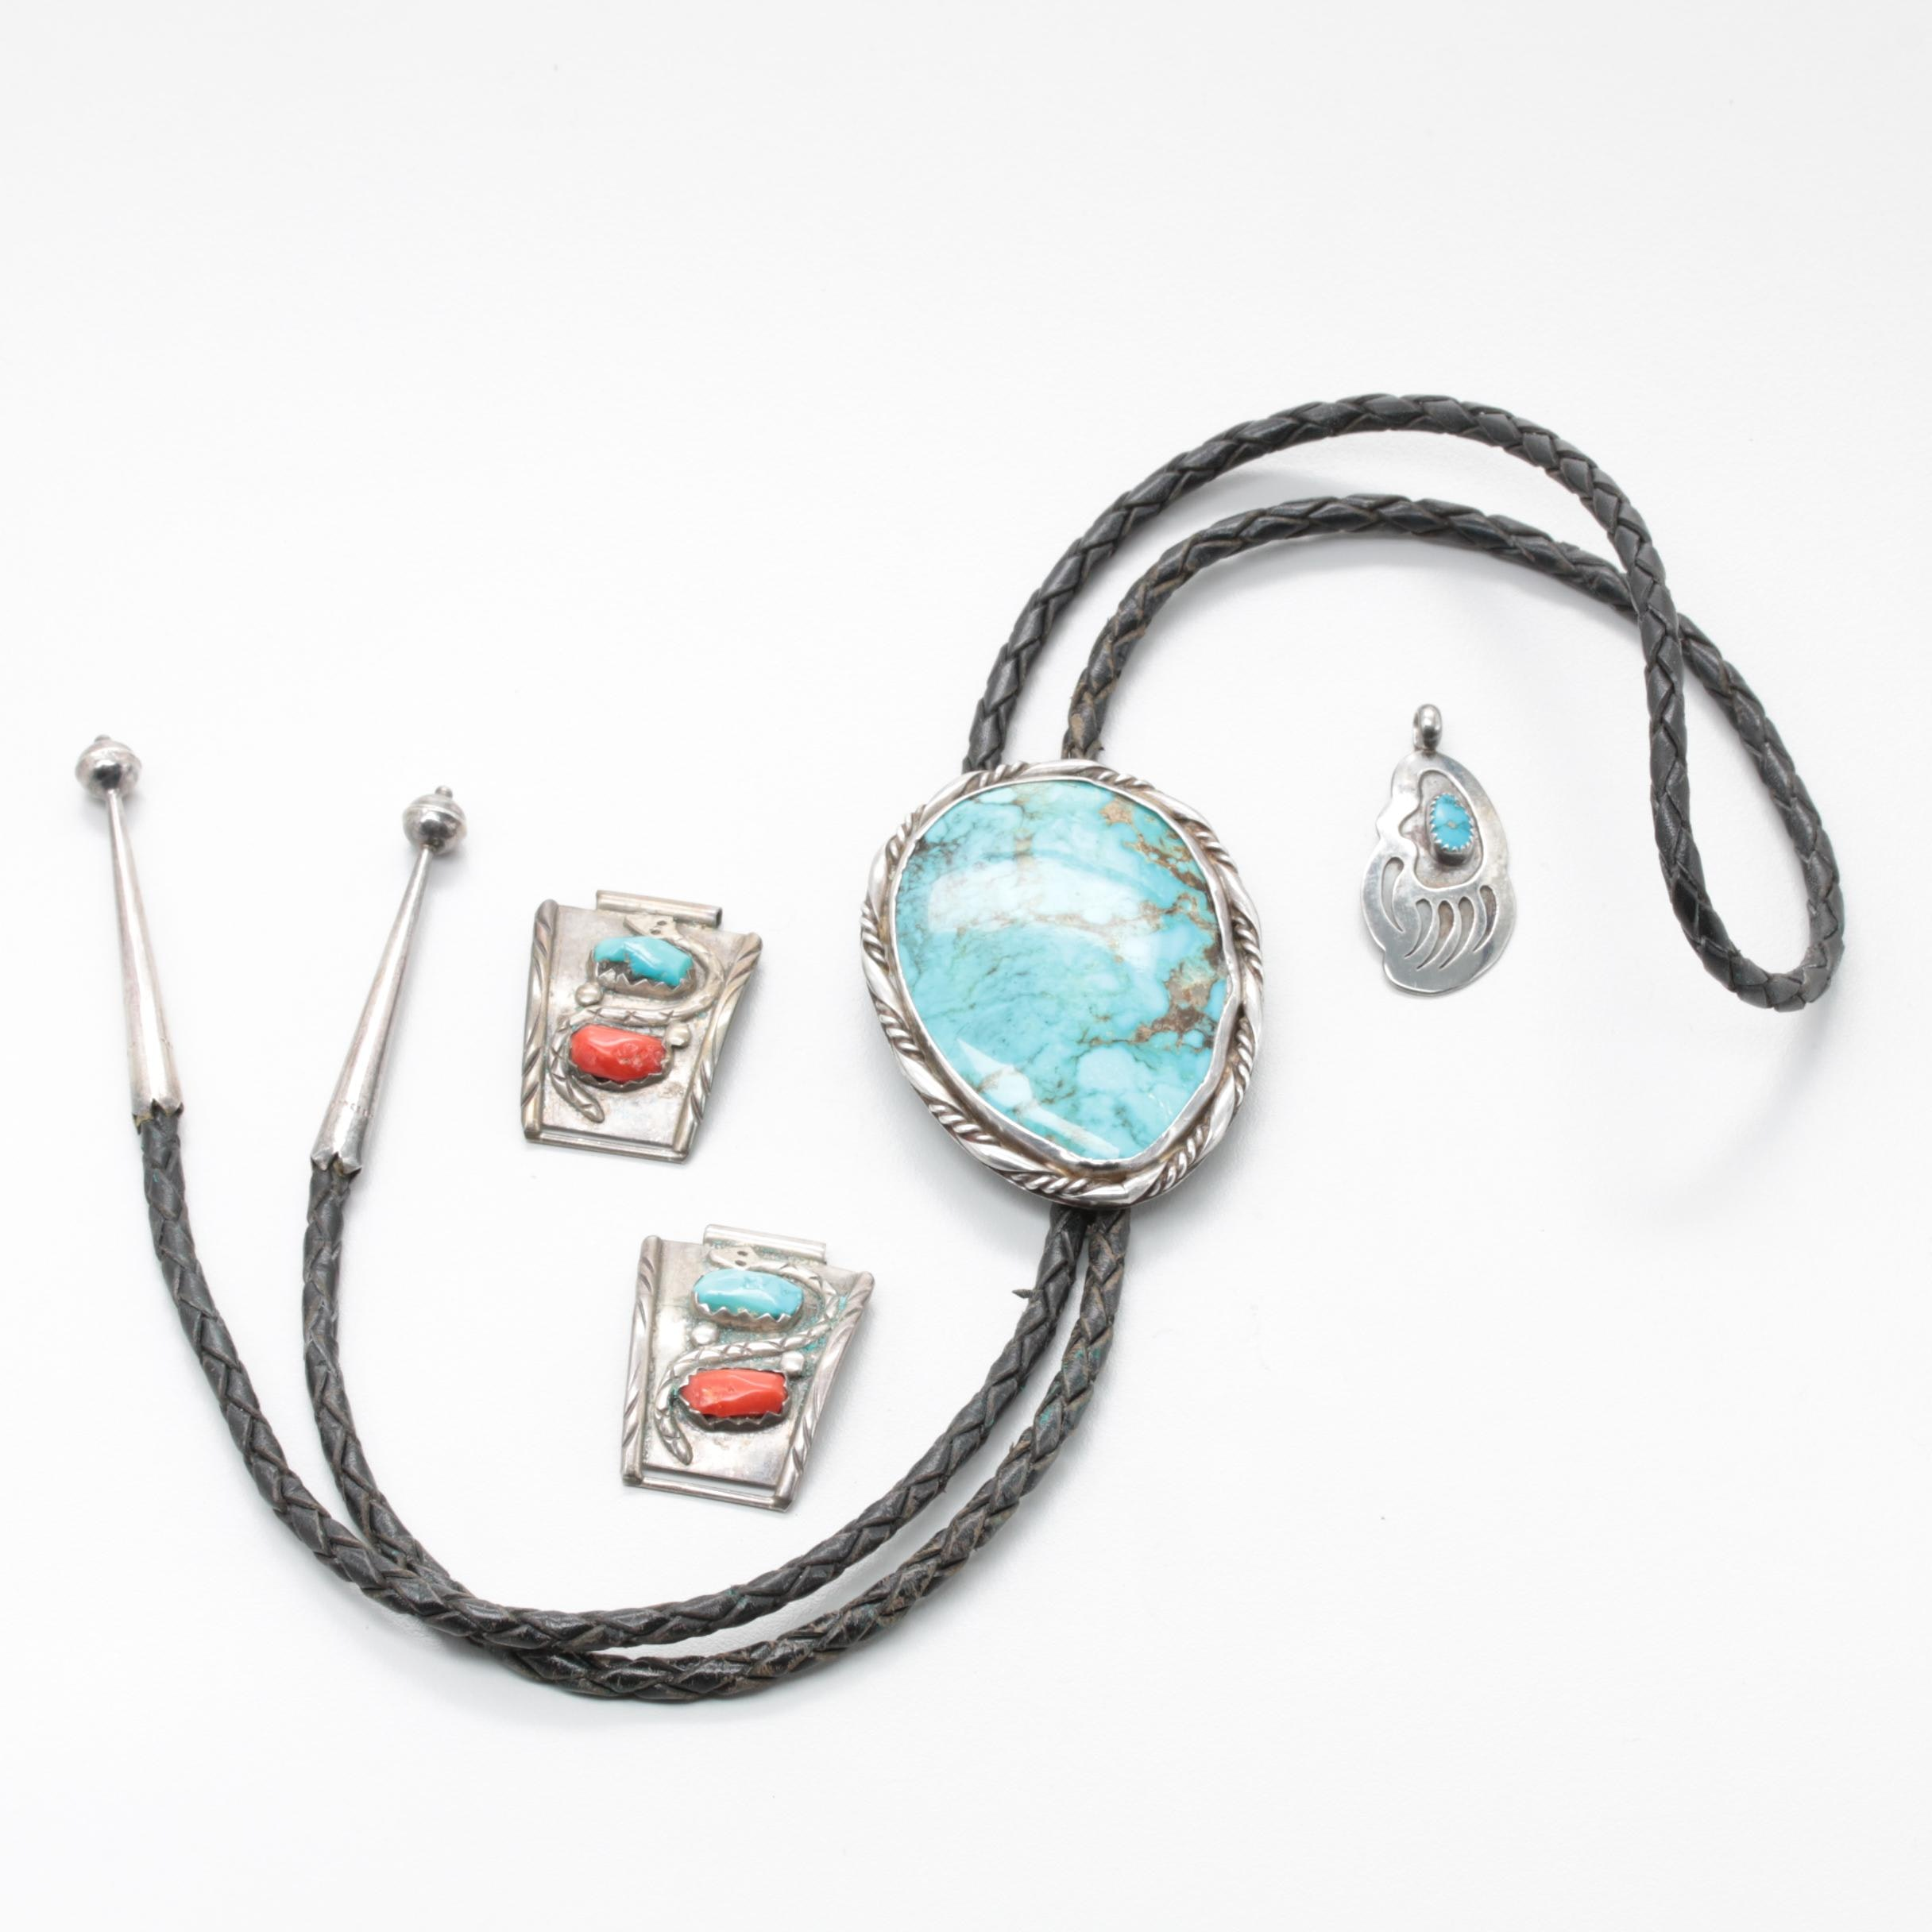 Sterling Jewelry With Native American Artisans Gilbert Damon and Marvolyne